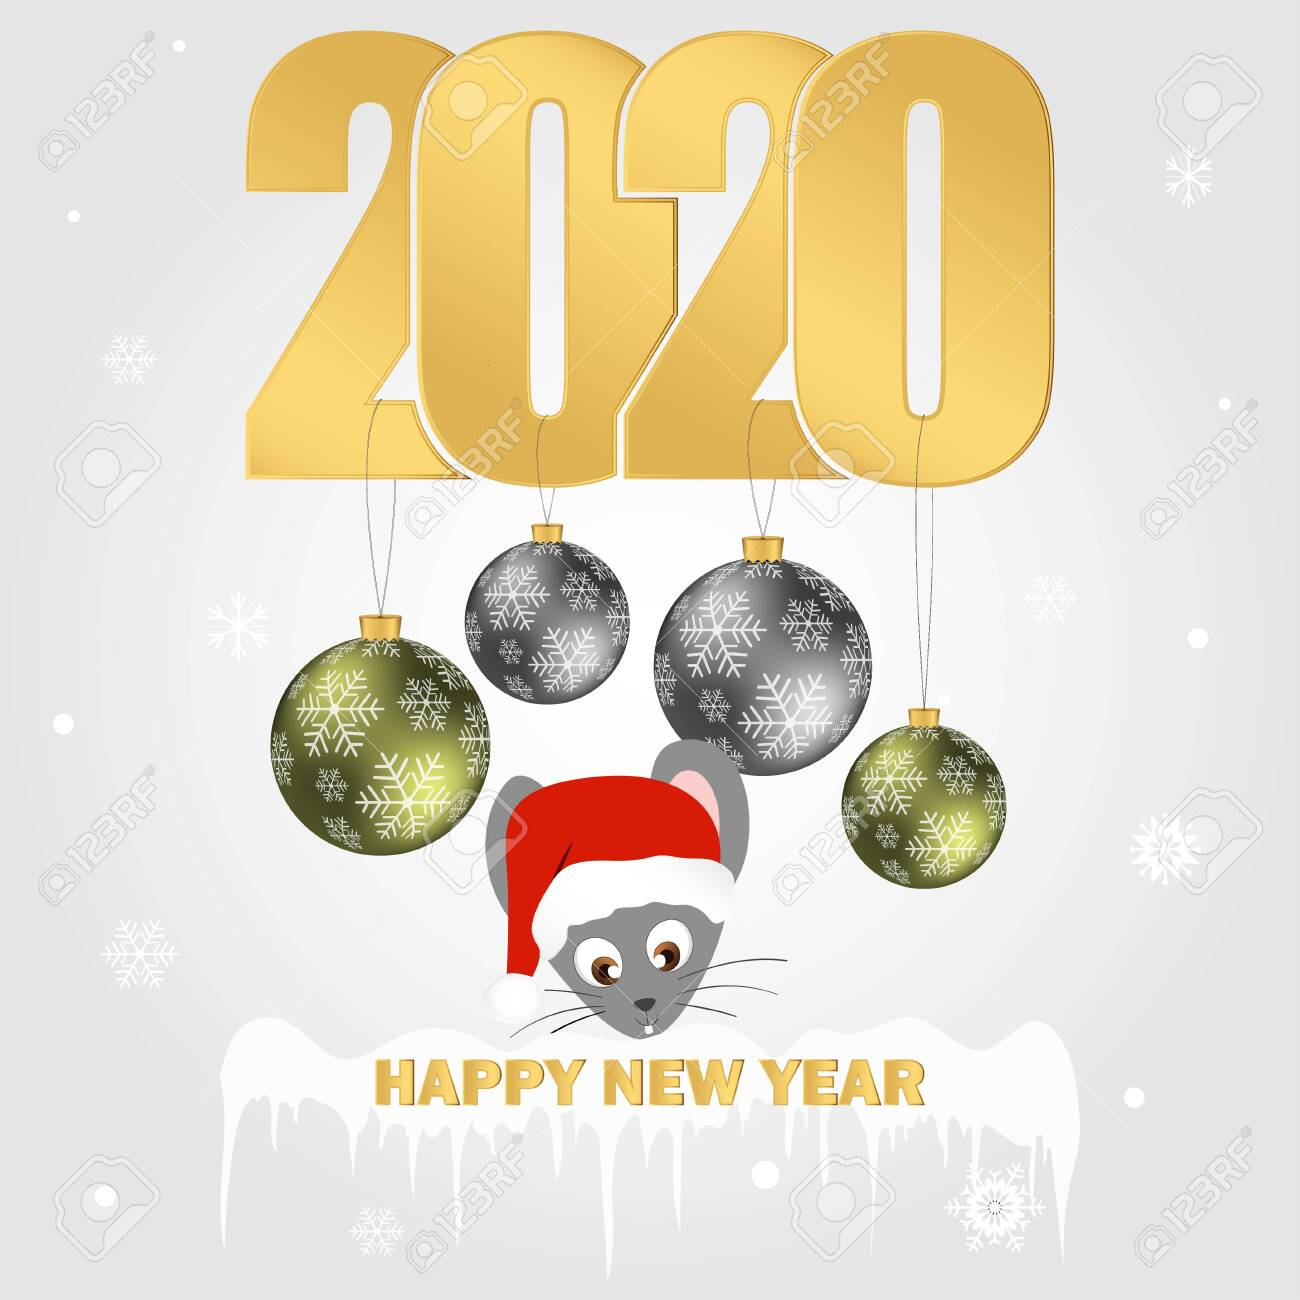 Present Christmas 2020 Happy New Year 2020. Christmas tree Decorations, Present